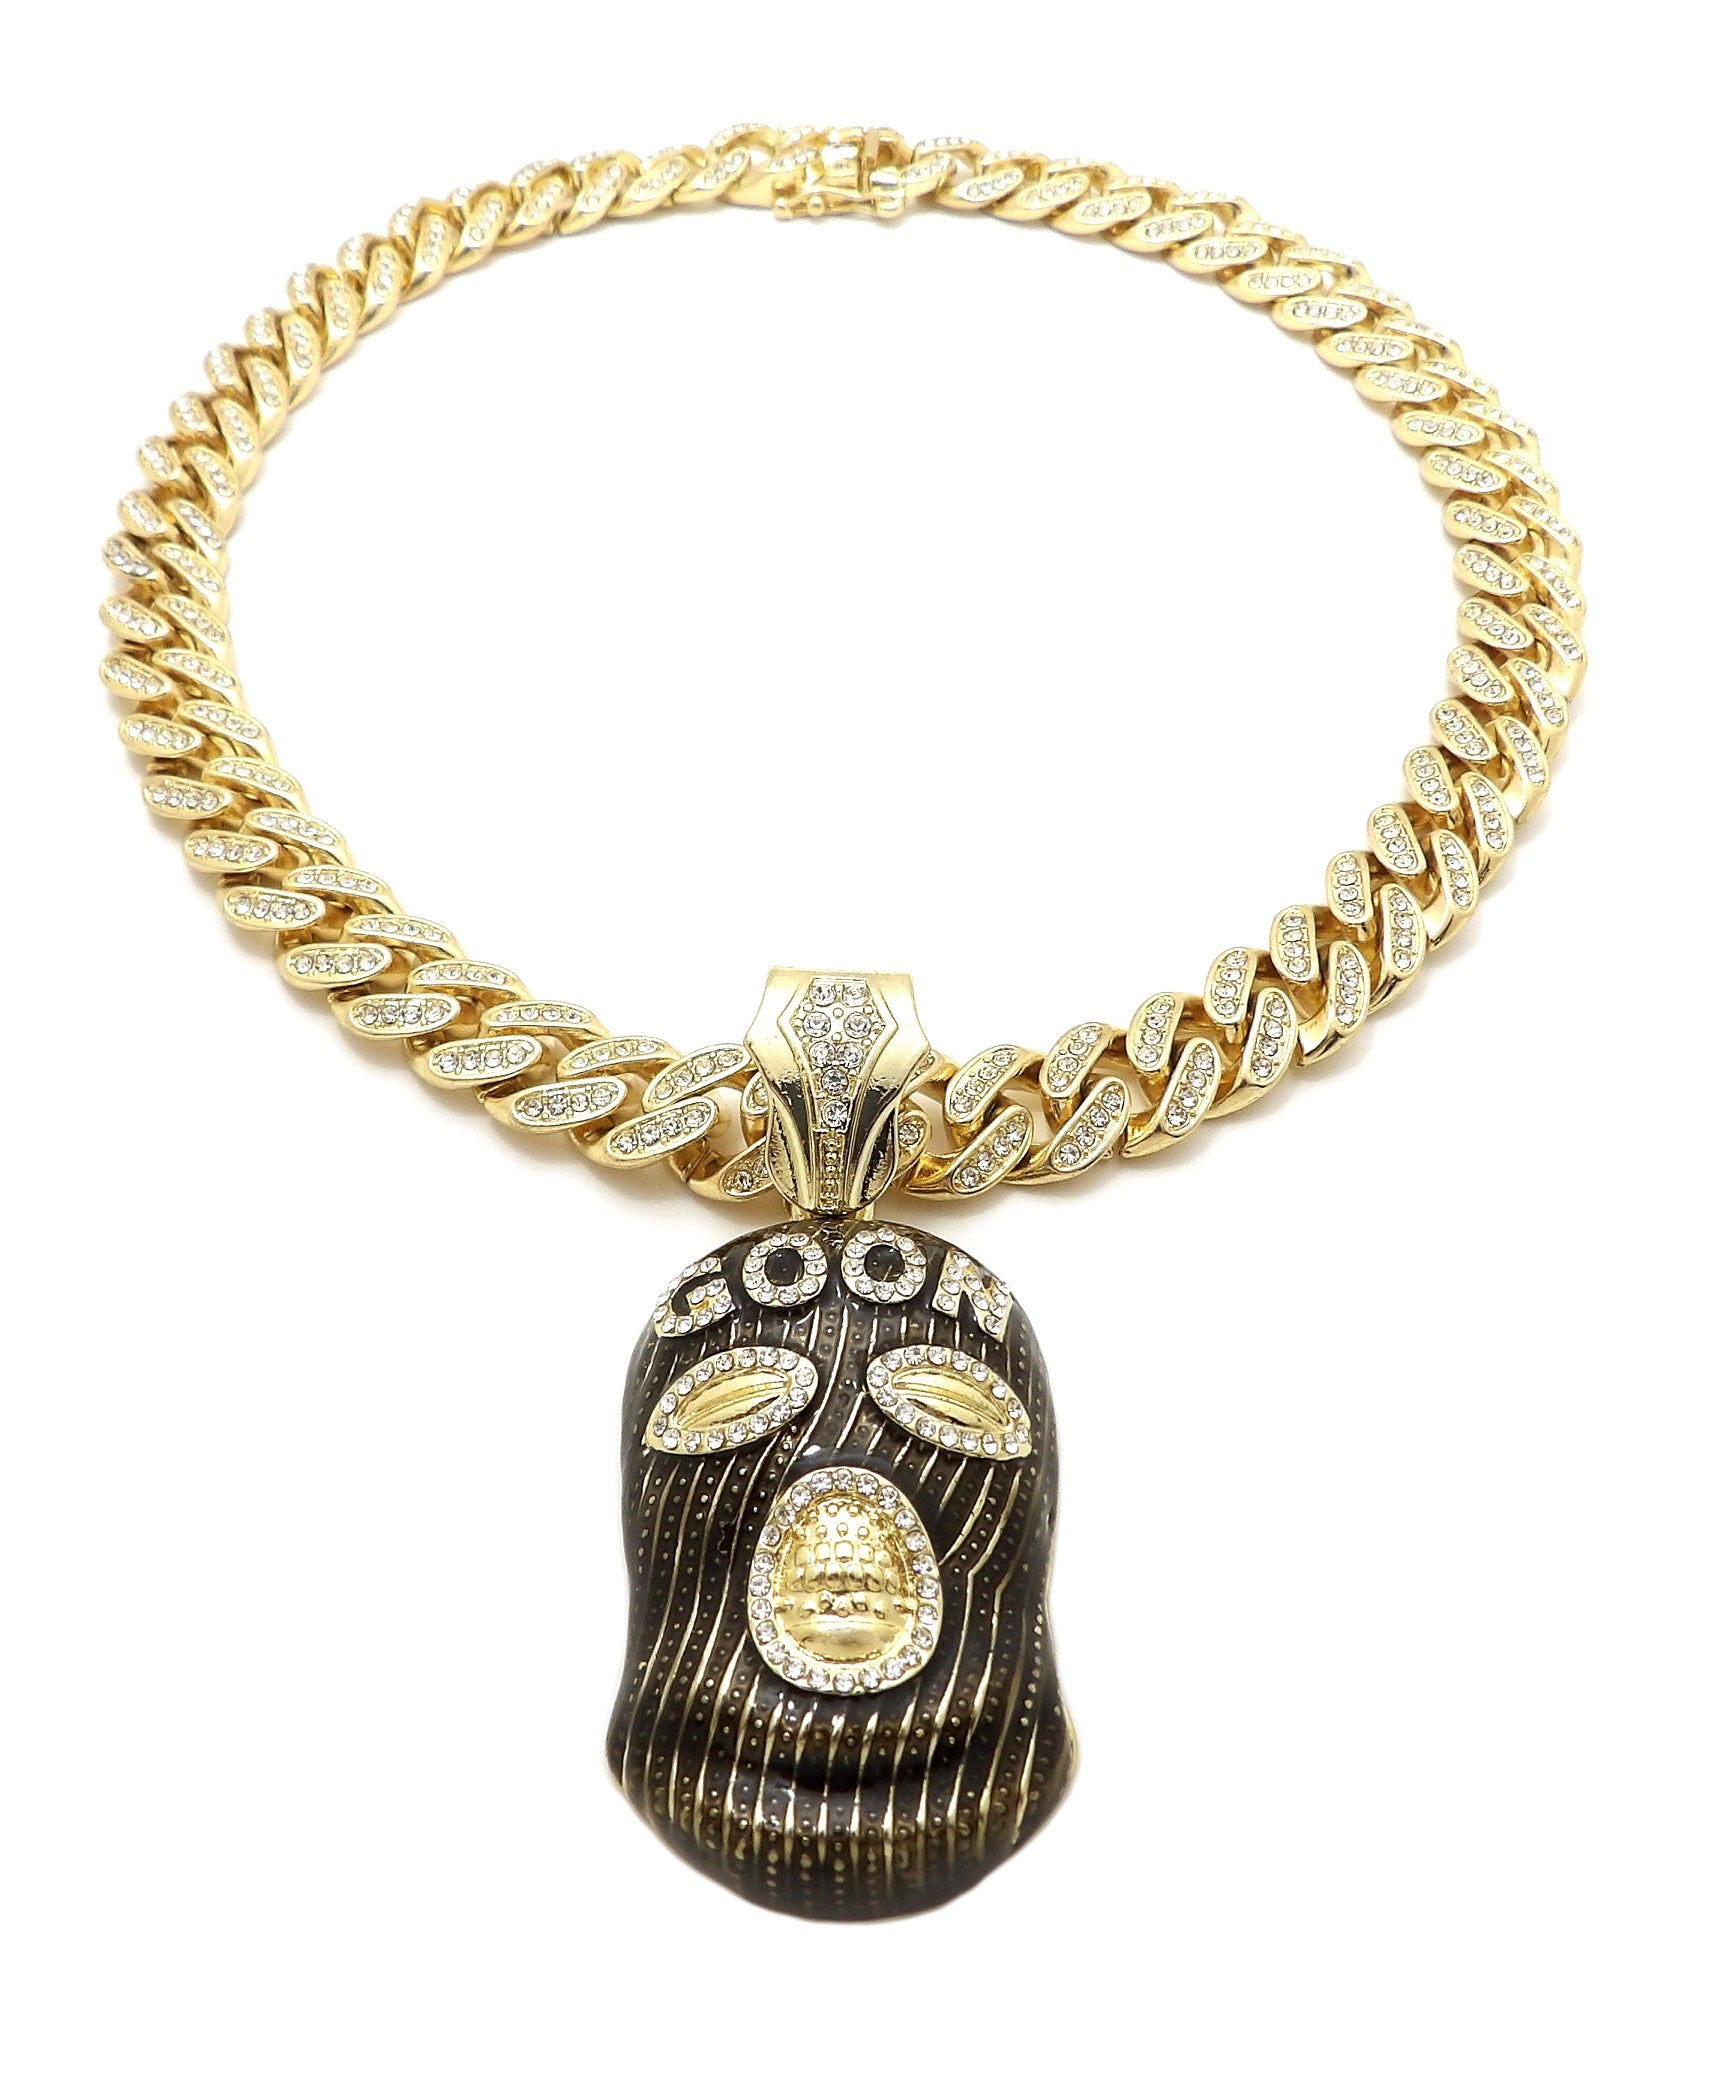 14k Iced Out Good Pendant On 24 Inch Miami Cuban